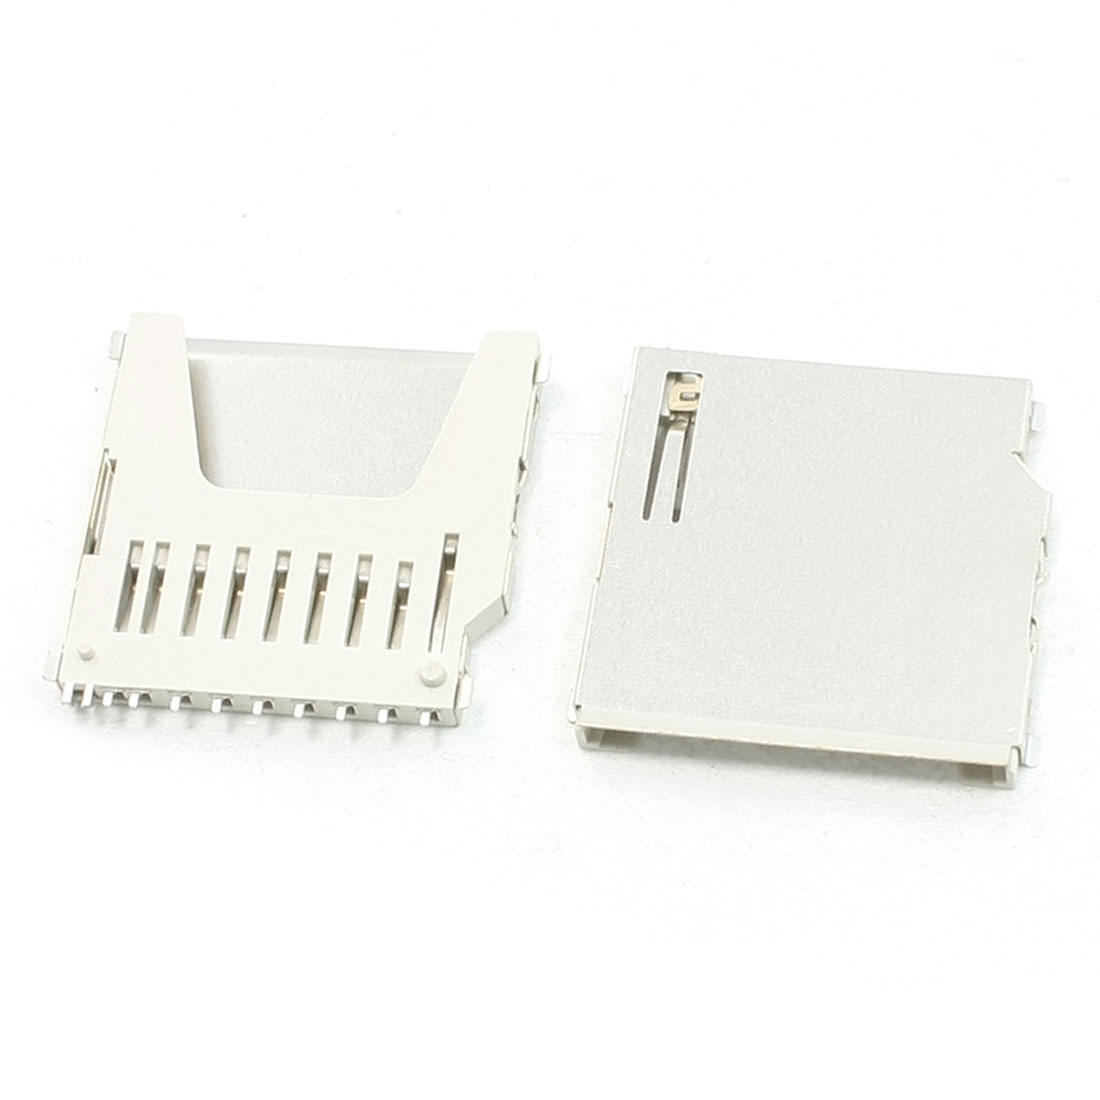 20 Pcs SMT Mounting Pull-Out Type SD Memory Card Sockets 26mm x 26mm